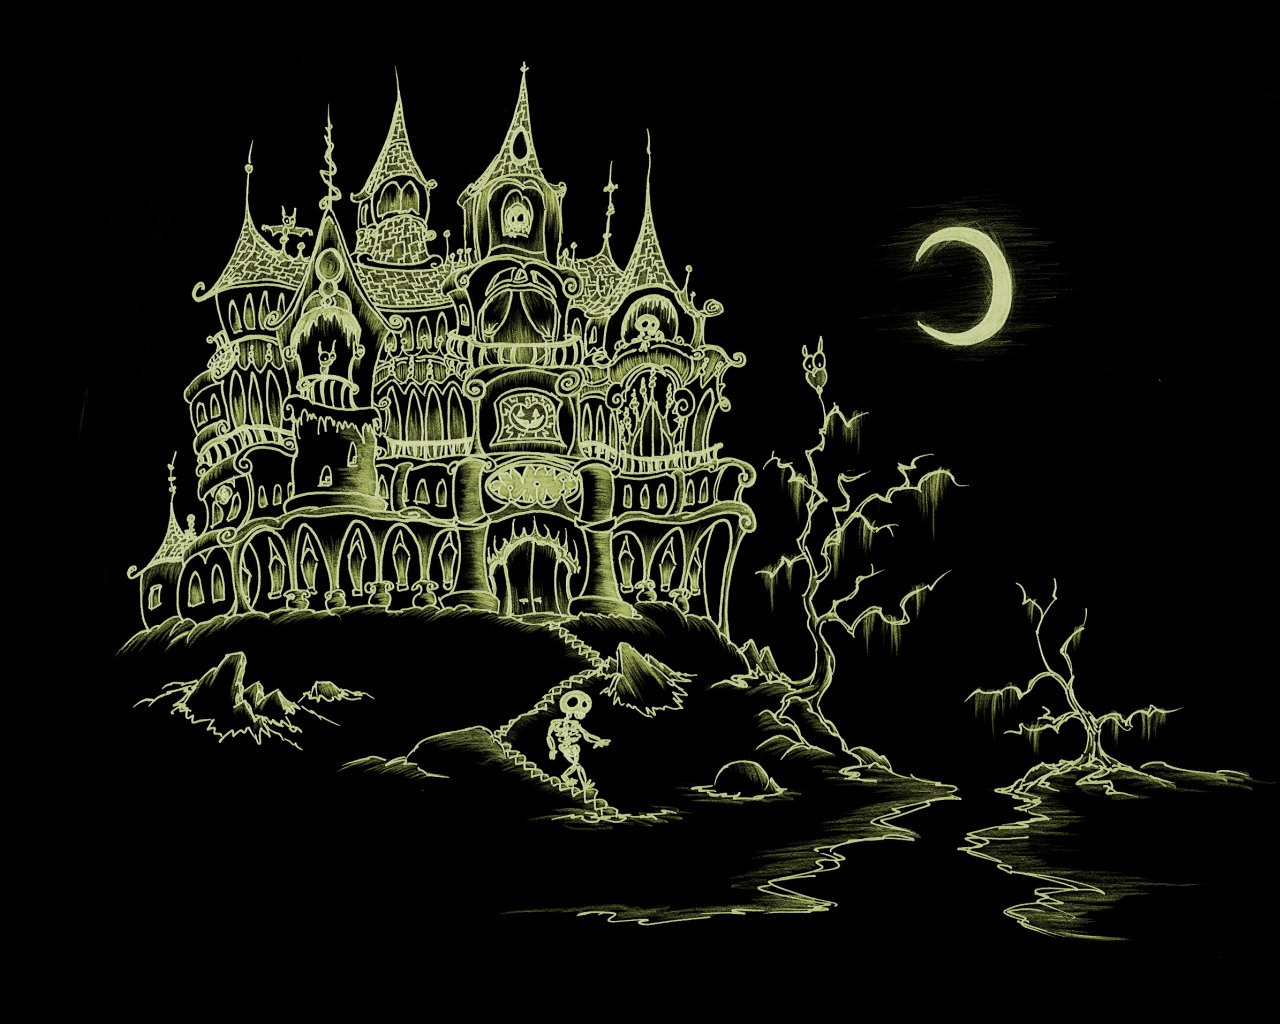 Grand Wazoo Clothing And Other Woundrous Things: haunted house drawing ideas